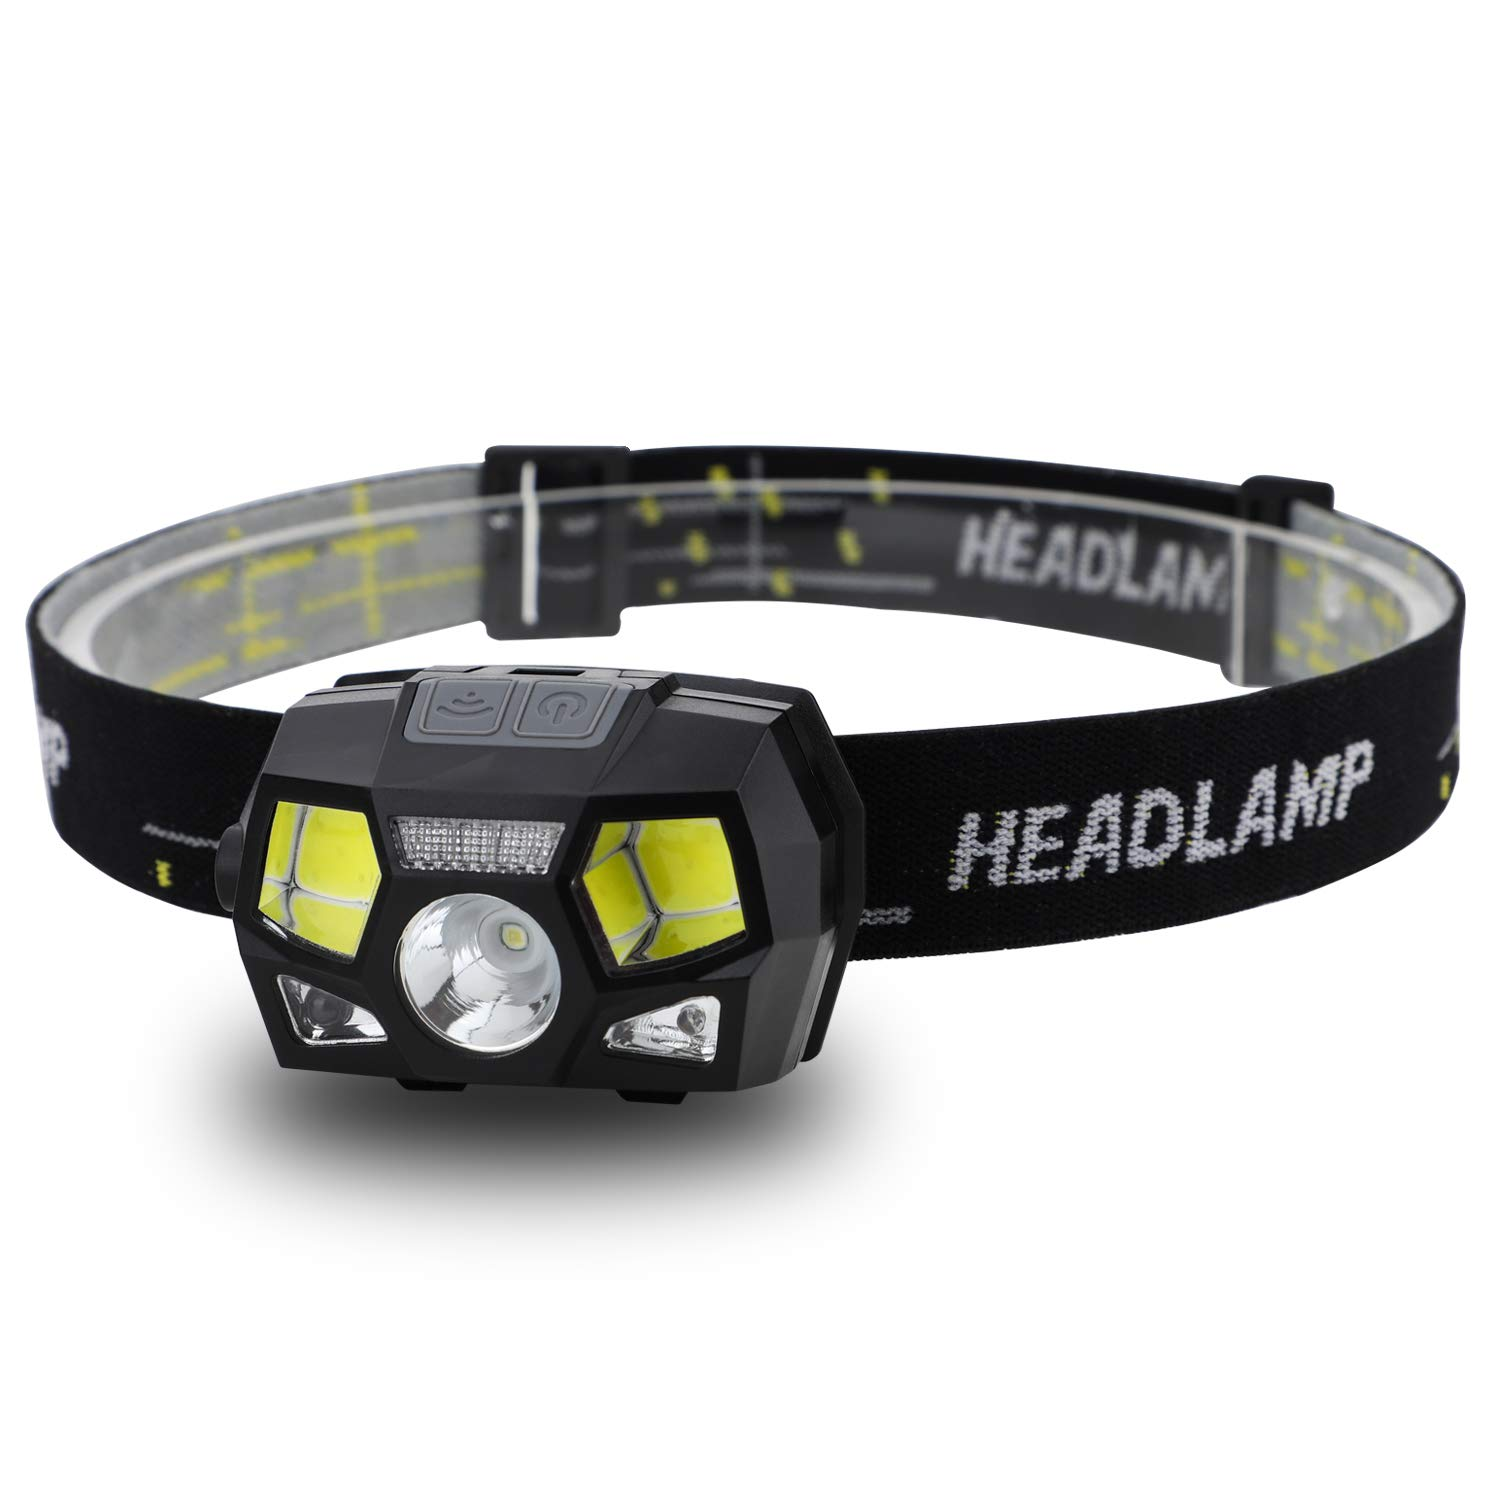 LED Headlamp Flashlight 280 Lumen Head Lamps Torch, USB Rechargeable Waterproof Headlamps with Focus for Camping, Hiking,Outdoor Indoor,6 Lightning Modes, White Red LEDs and Sensor Switch